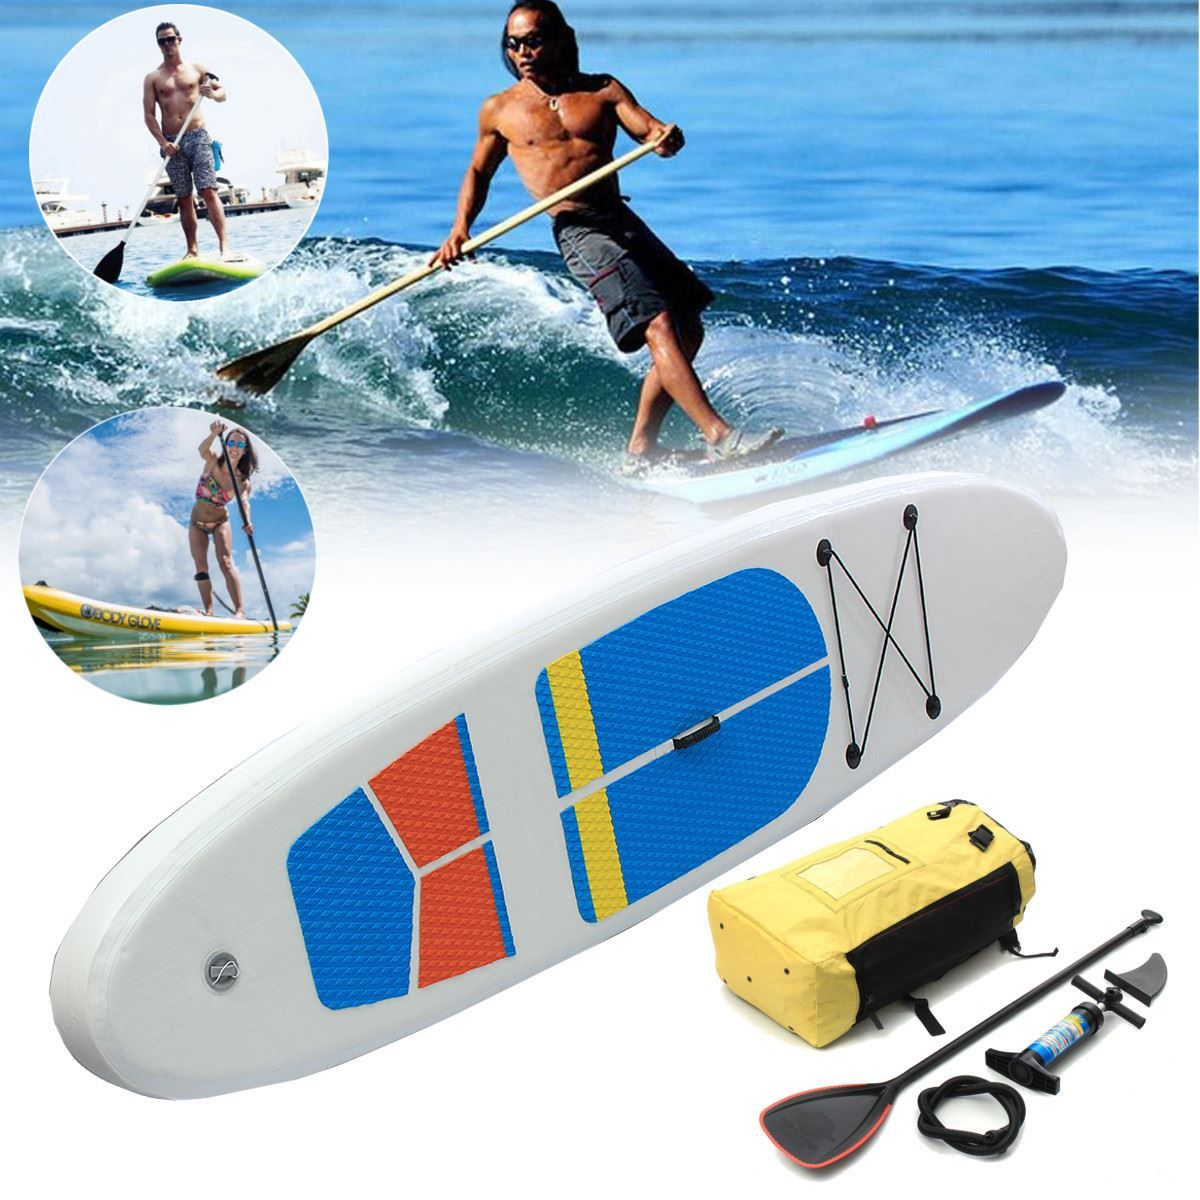 Gofun 330 * 81 * 10cm Stand Up Paddle Surfboard Inflatable Board SUP Set W ave Rider + Pump inflatable surf board paddle boat